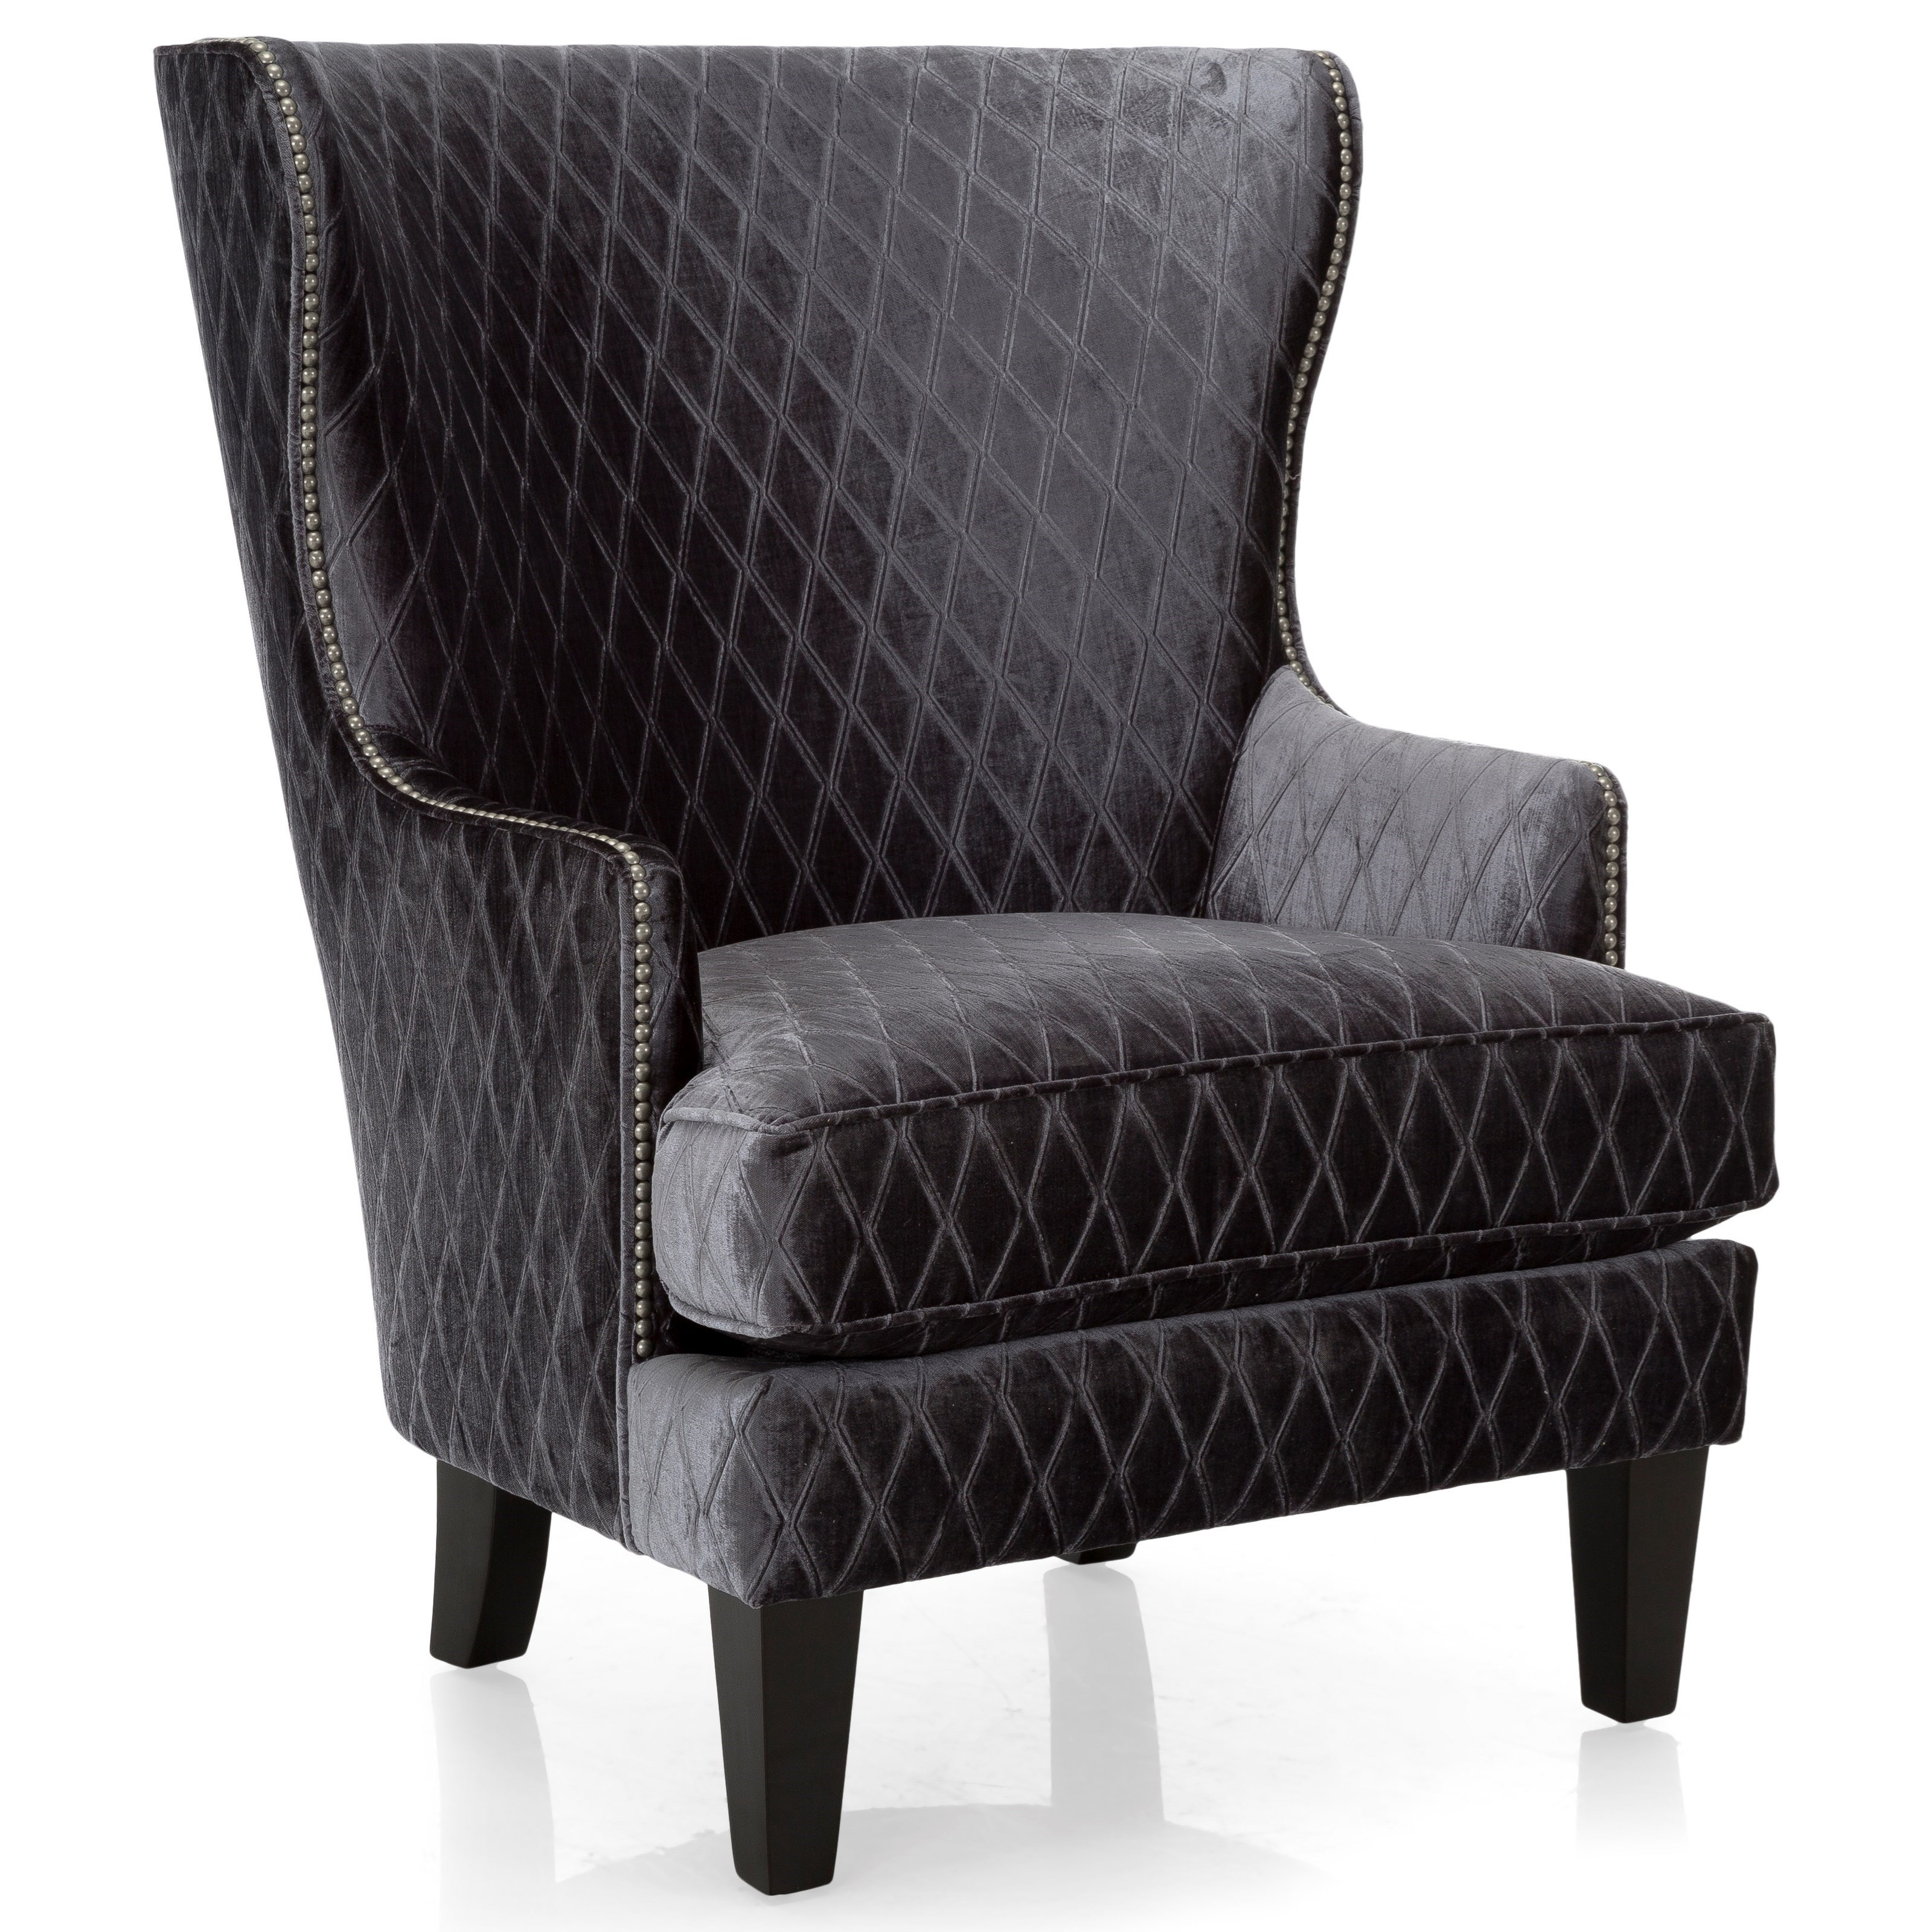 Decor Rest 2492 Traditional Wing Back Chair With Nailhead Trim